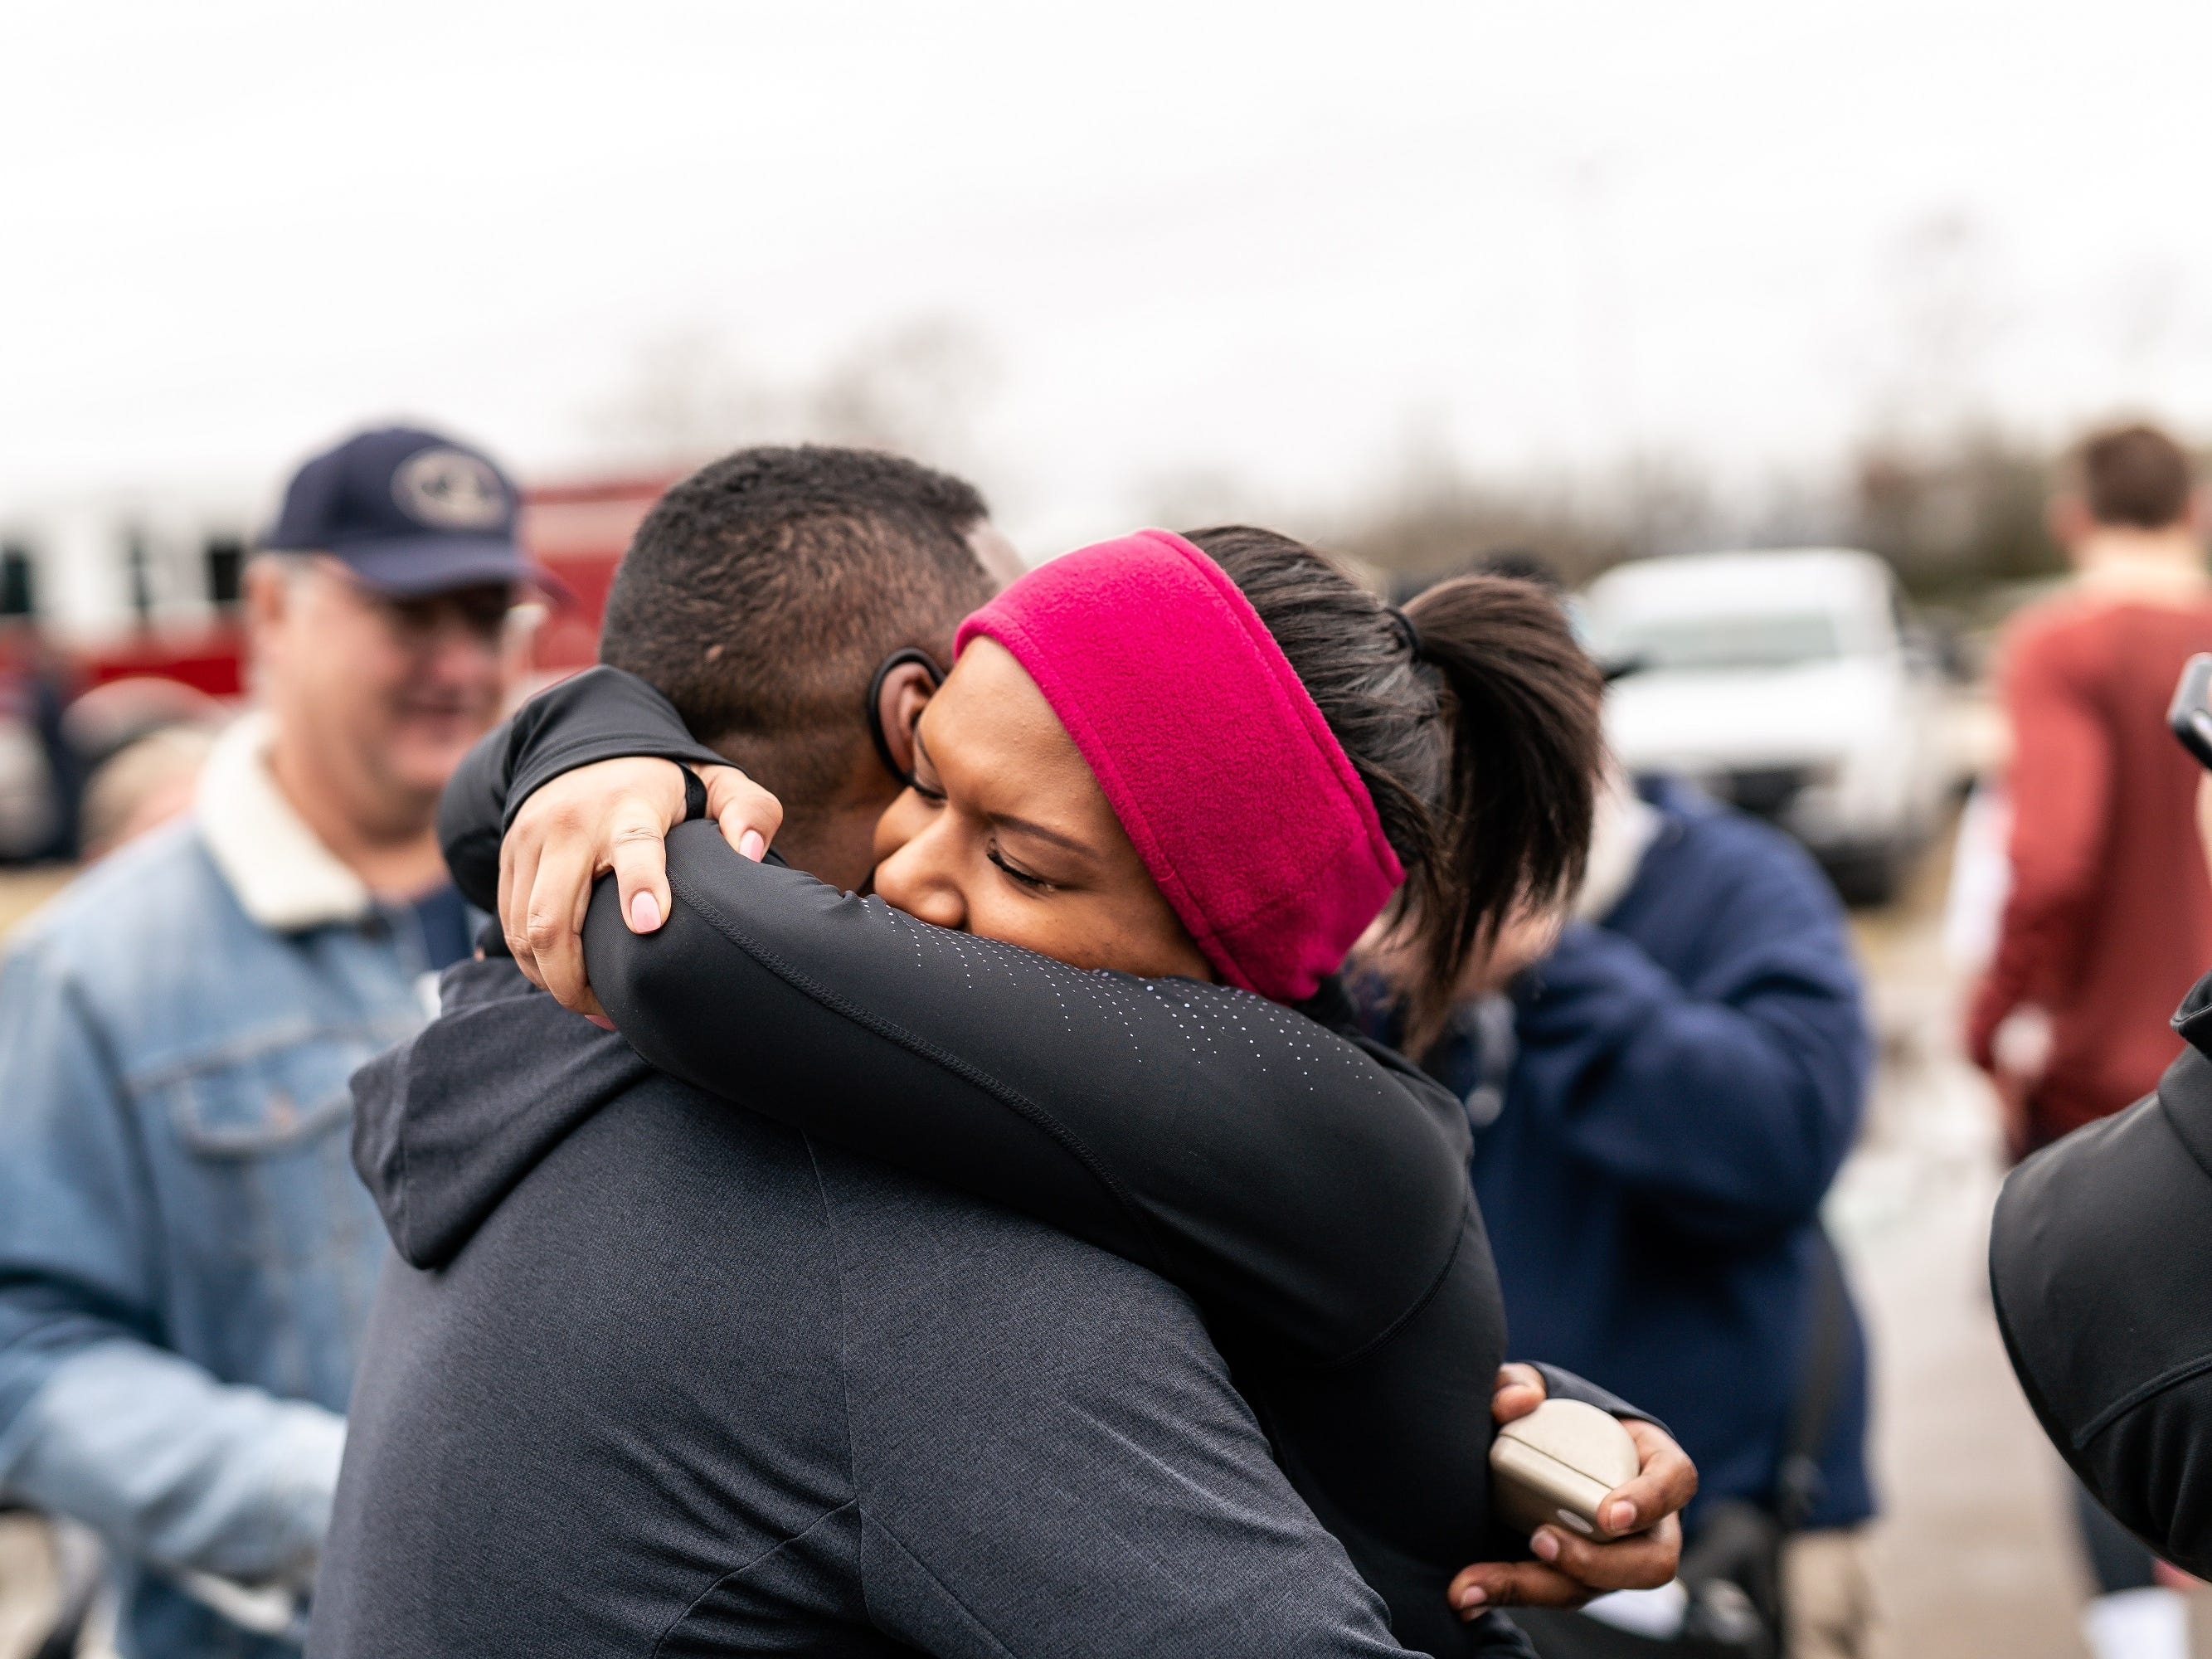 Joshua Crutchfield and Tiffany Smith embrace after getting engaged following the Murfreesboro New Year's Day 5K.